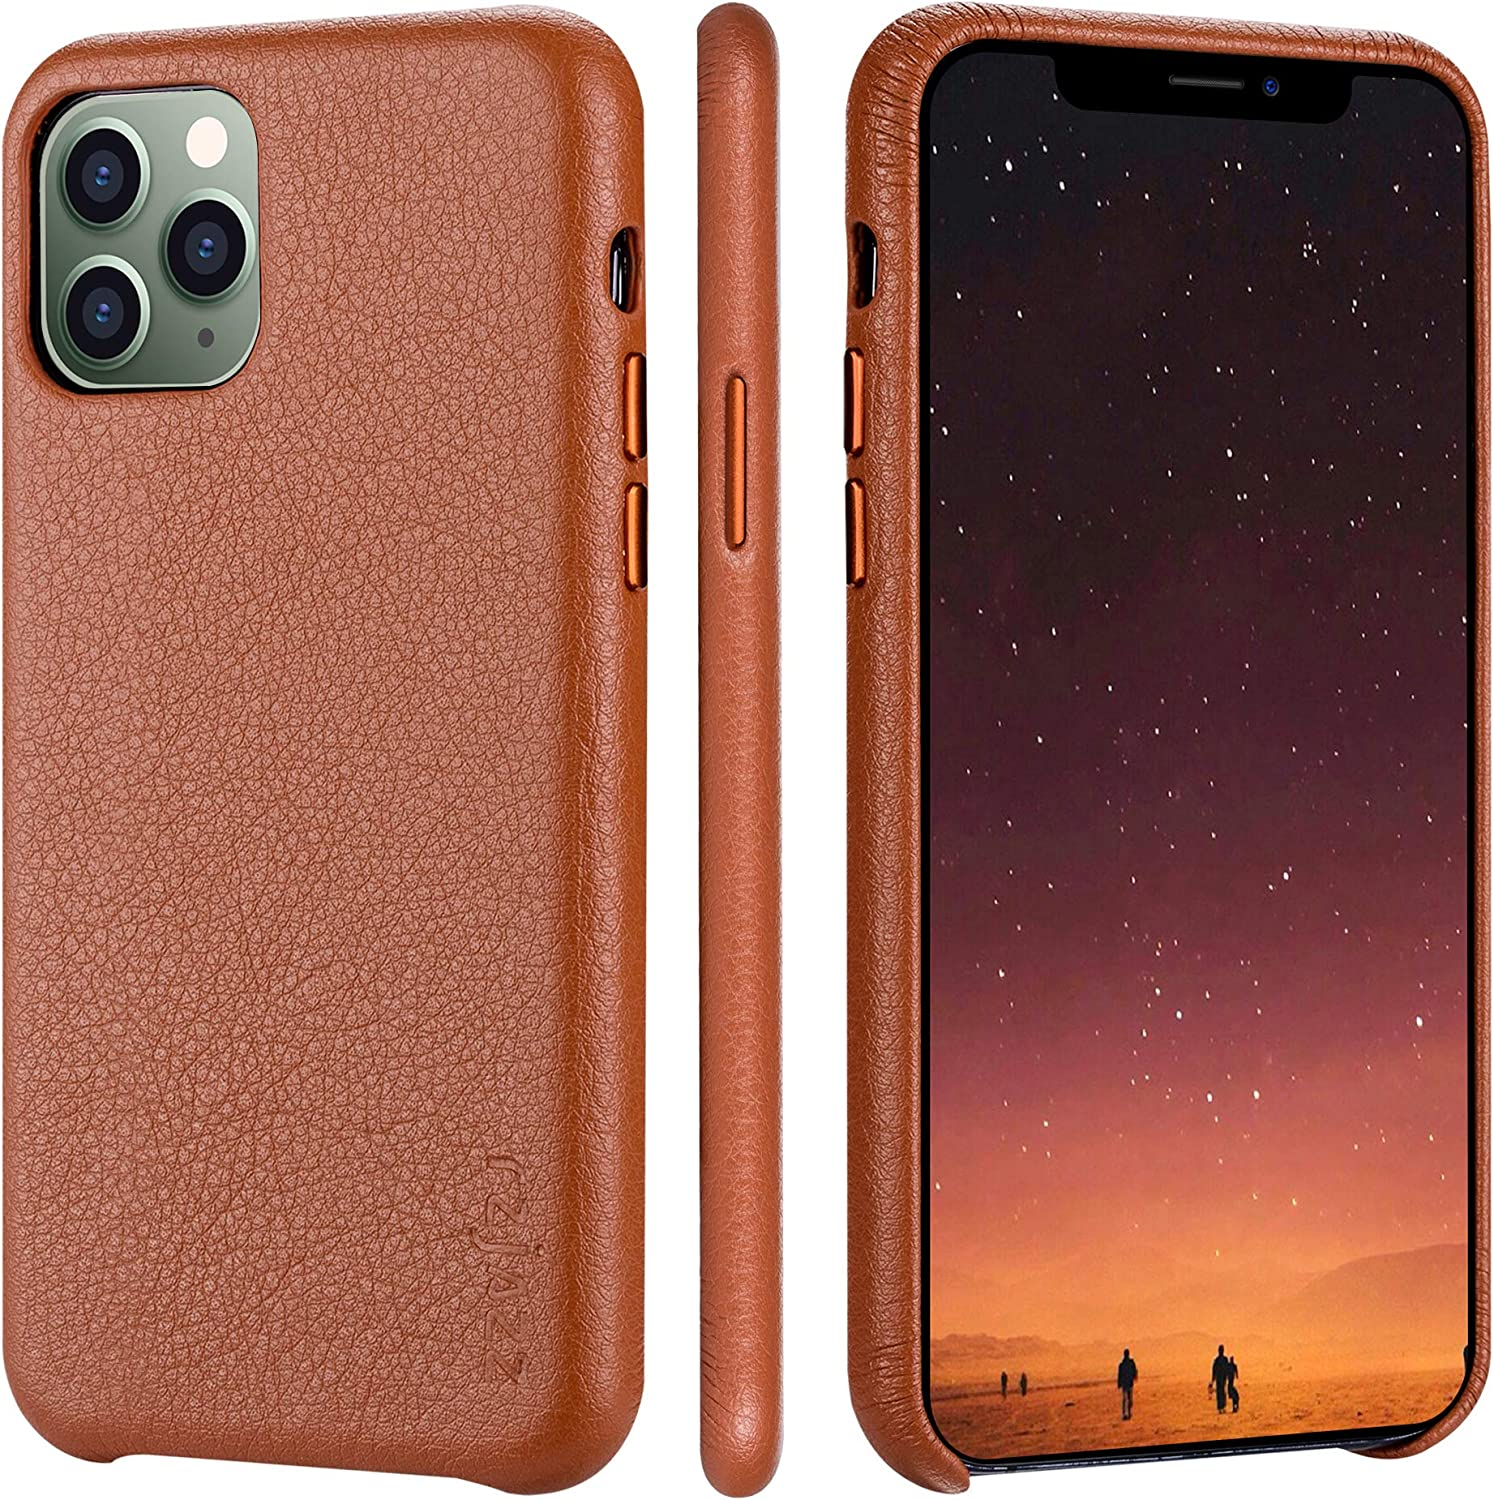 rejazz iPhone 11 pro Case Anti-Scratch Iphone11 pro Cover Genuine Leather Apple iPhone Cases for iPhone 11 pro (5.8 Inch) (Brown)